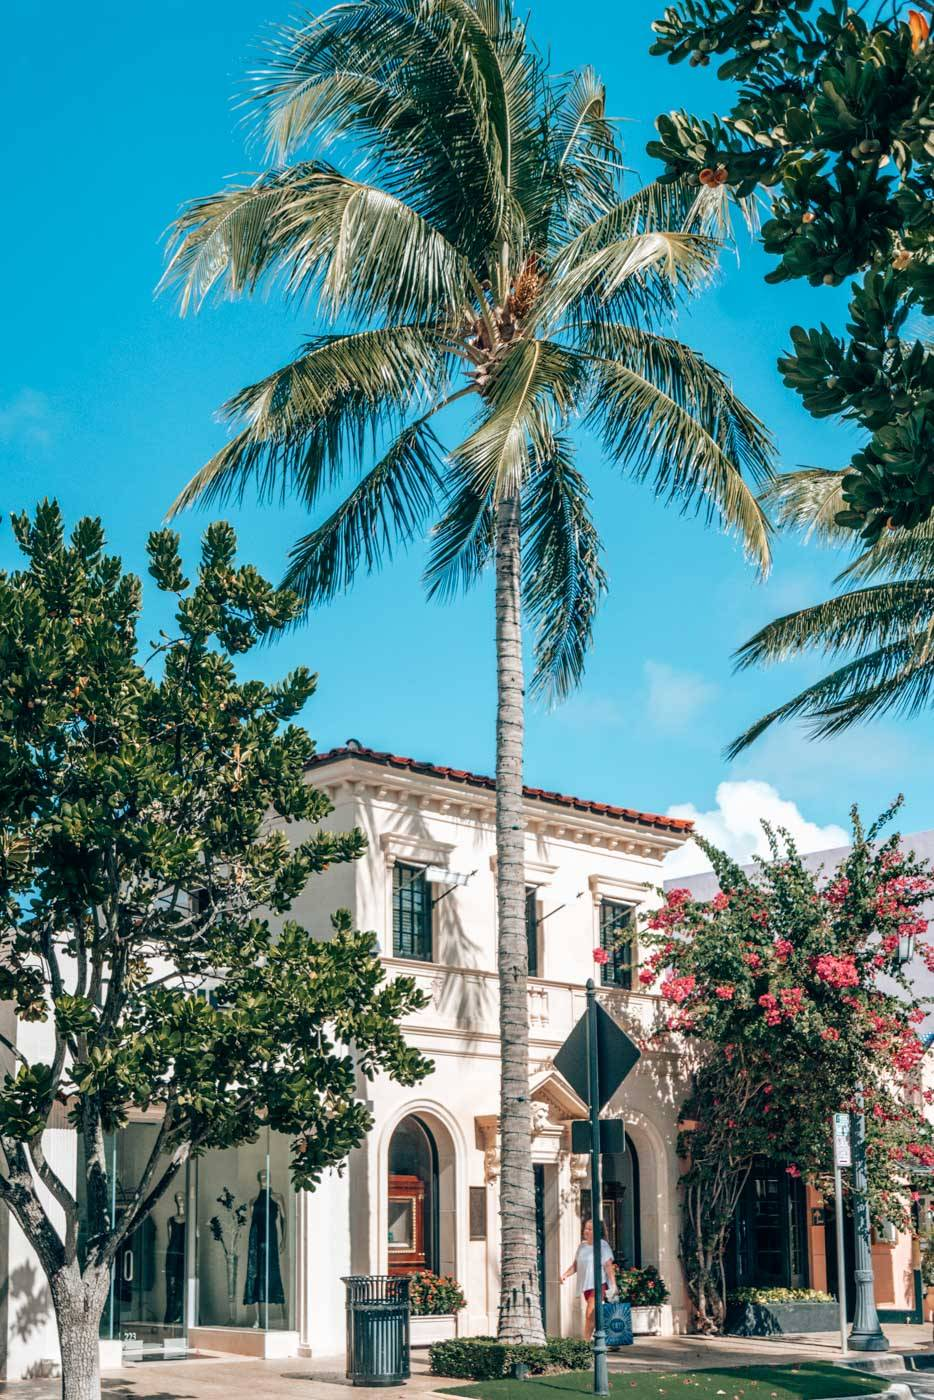 This Palm Beach Travel guide covers everything from where to stay, what to do, and where to eat.